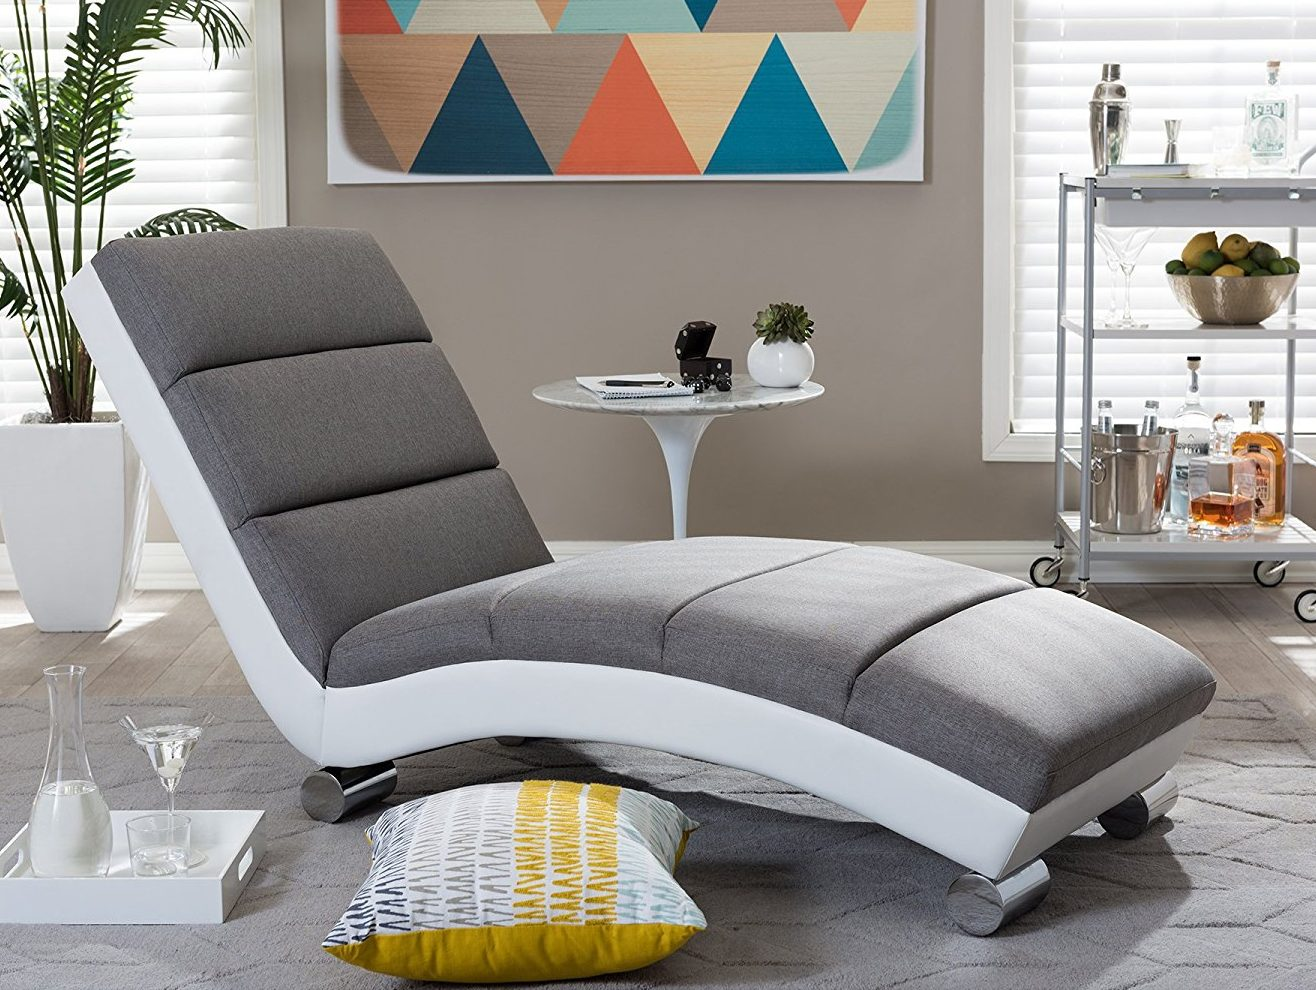 Baxton Studio Percy Modern Contemporary Grey Fabric and White Faux Leather Upholstered Chaise Lounge